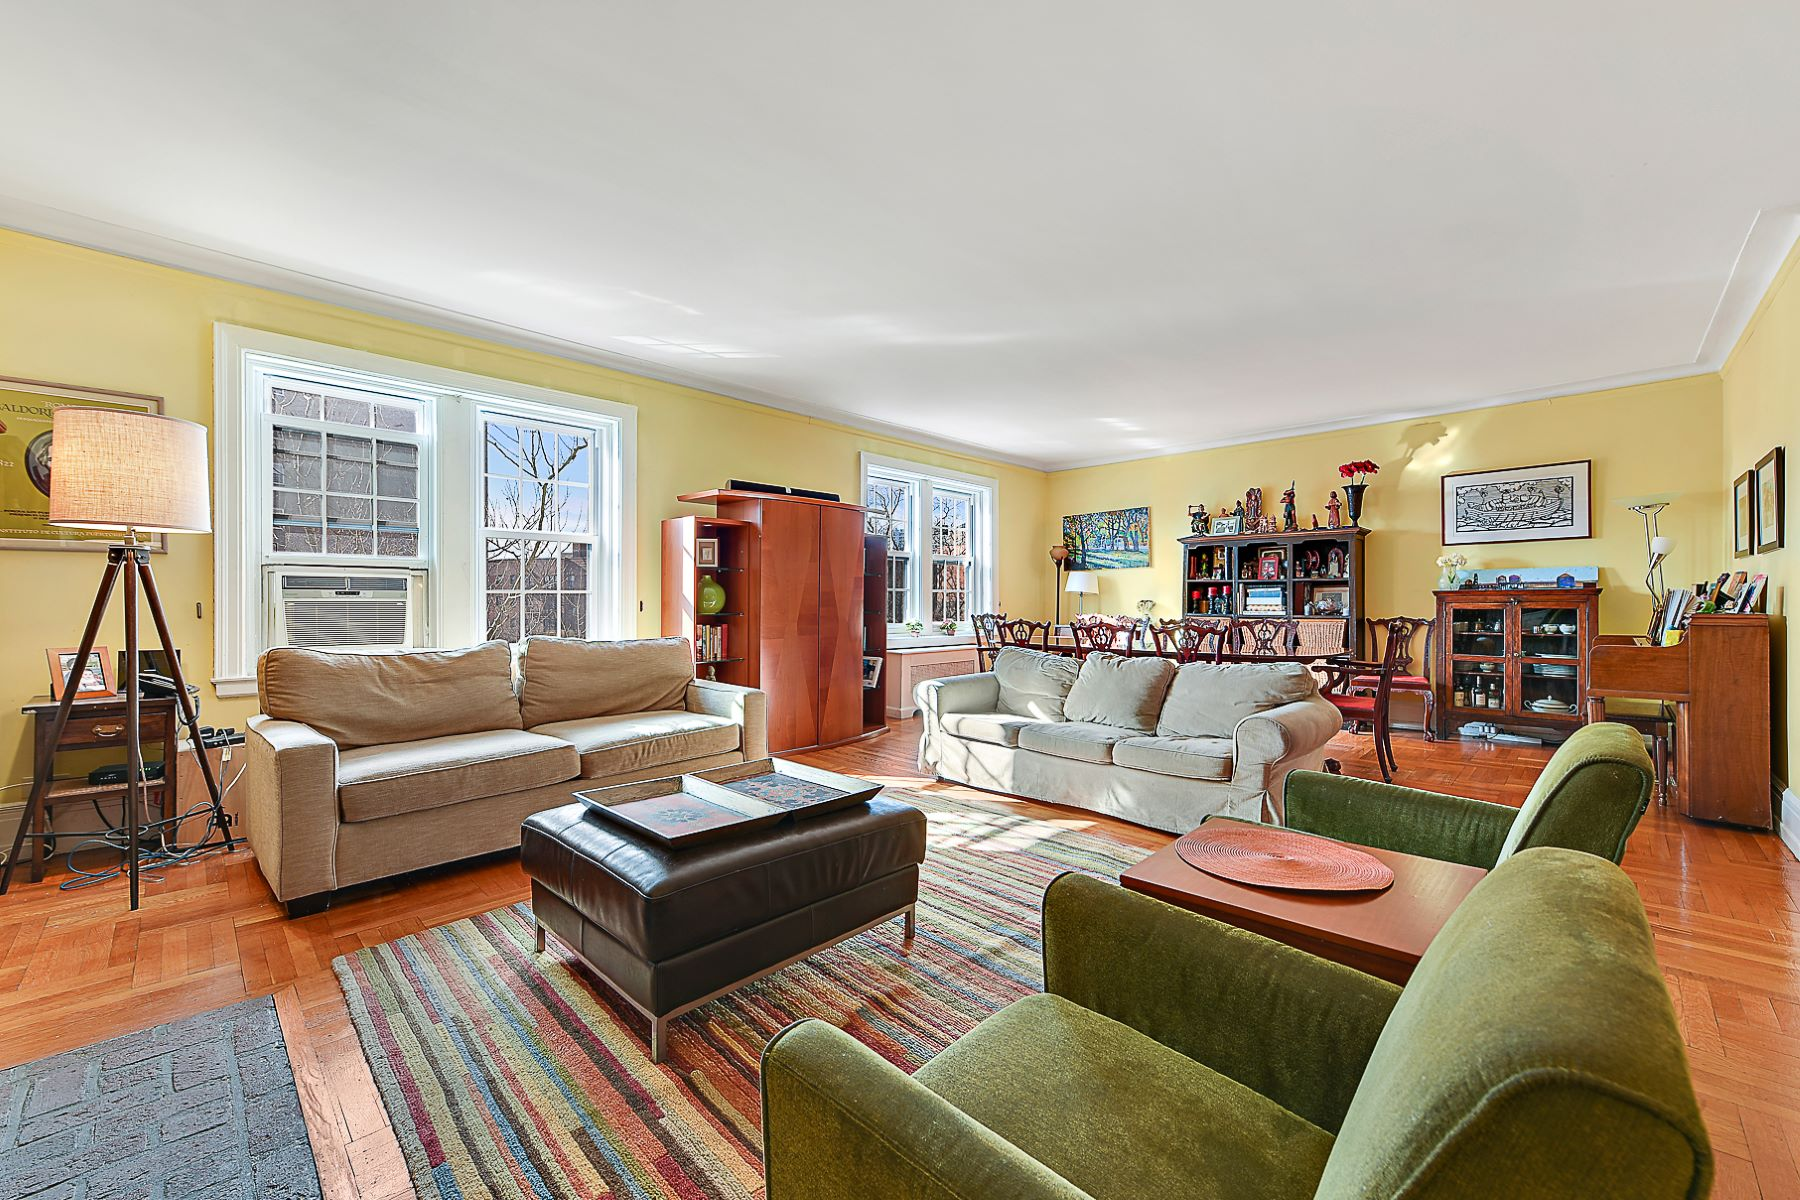 Co-op for Sale at Spacious and Elegant Prewar 3 Bedroom with Washer and Dryer 525 West 238 Street 4P Riverdale, New York 10463 United States